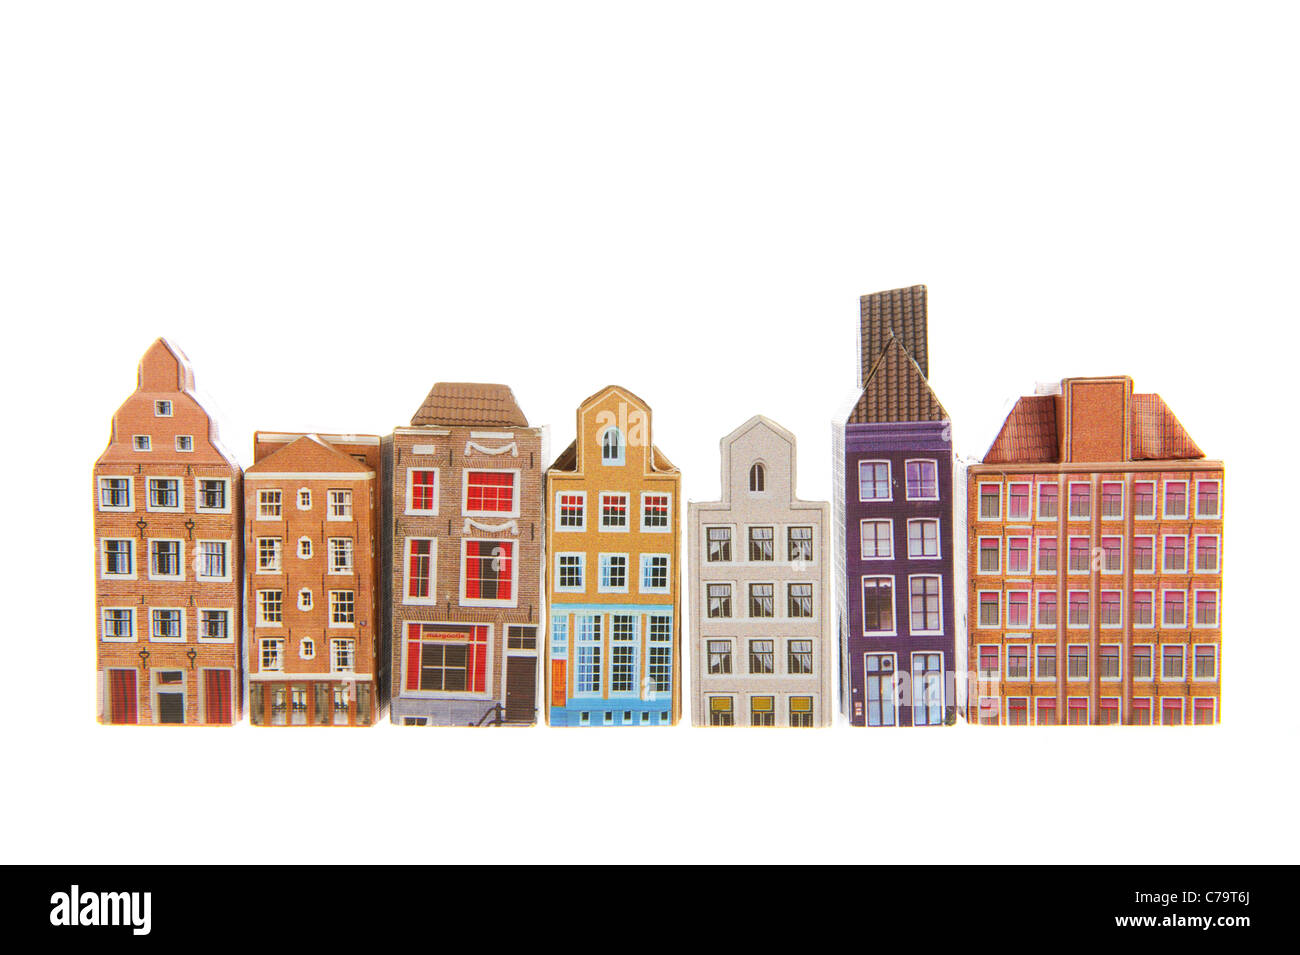 Row typical houses from Amsterdam isolated over white background - Stock Image